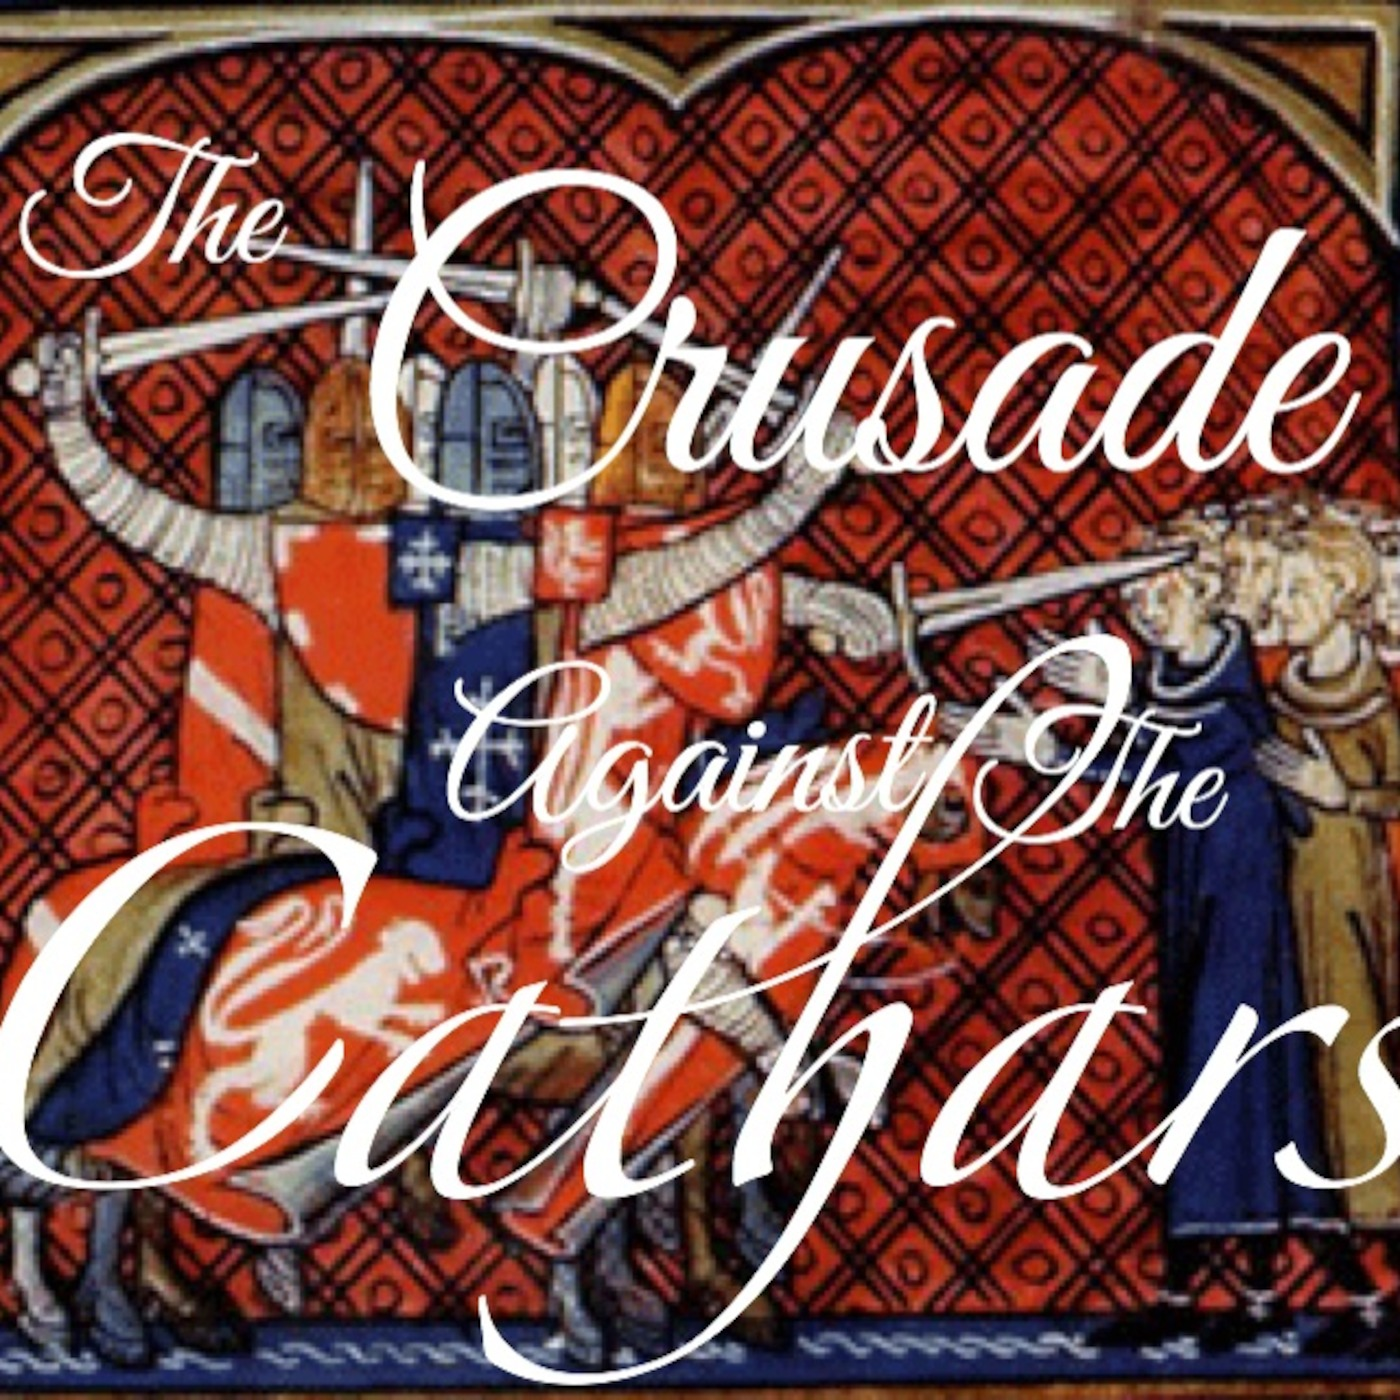 Episode 114 - The Crusade against the Cathars